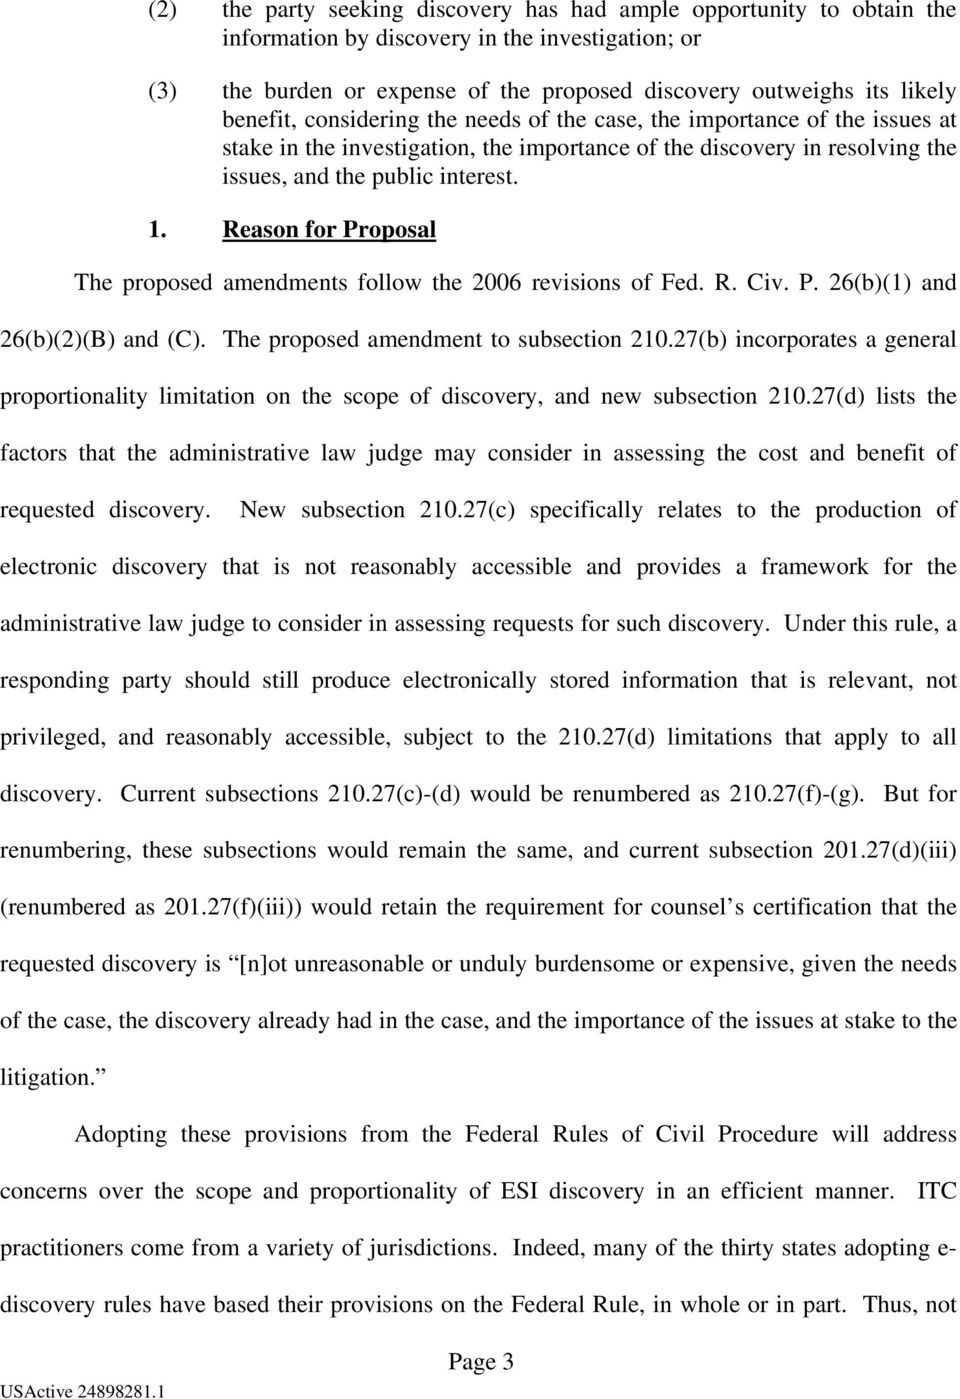 Reason for Proposal The proposed amendments follow the 2006 revisions of Fed. R. Civ. P. 26(b)(1) and 26(b)(2)(B) and (C). The proposed amendment to subsection 210.